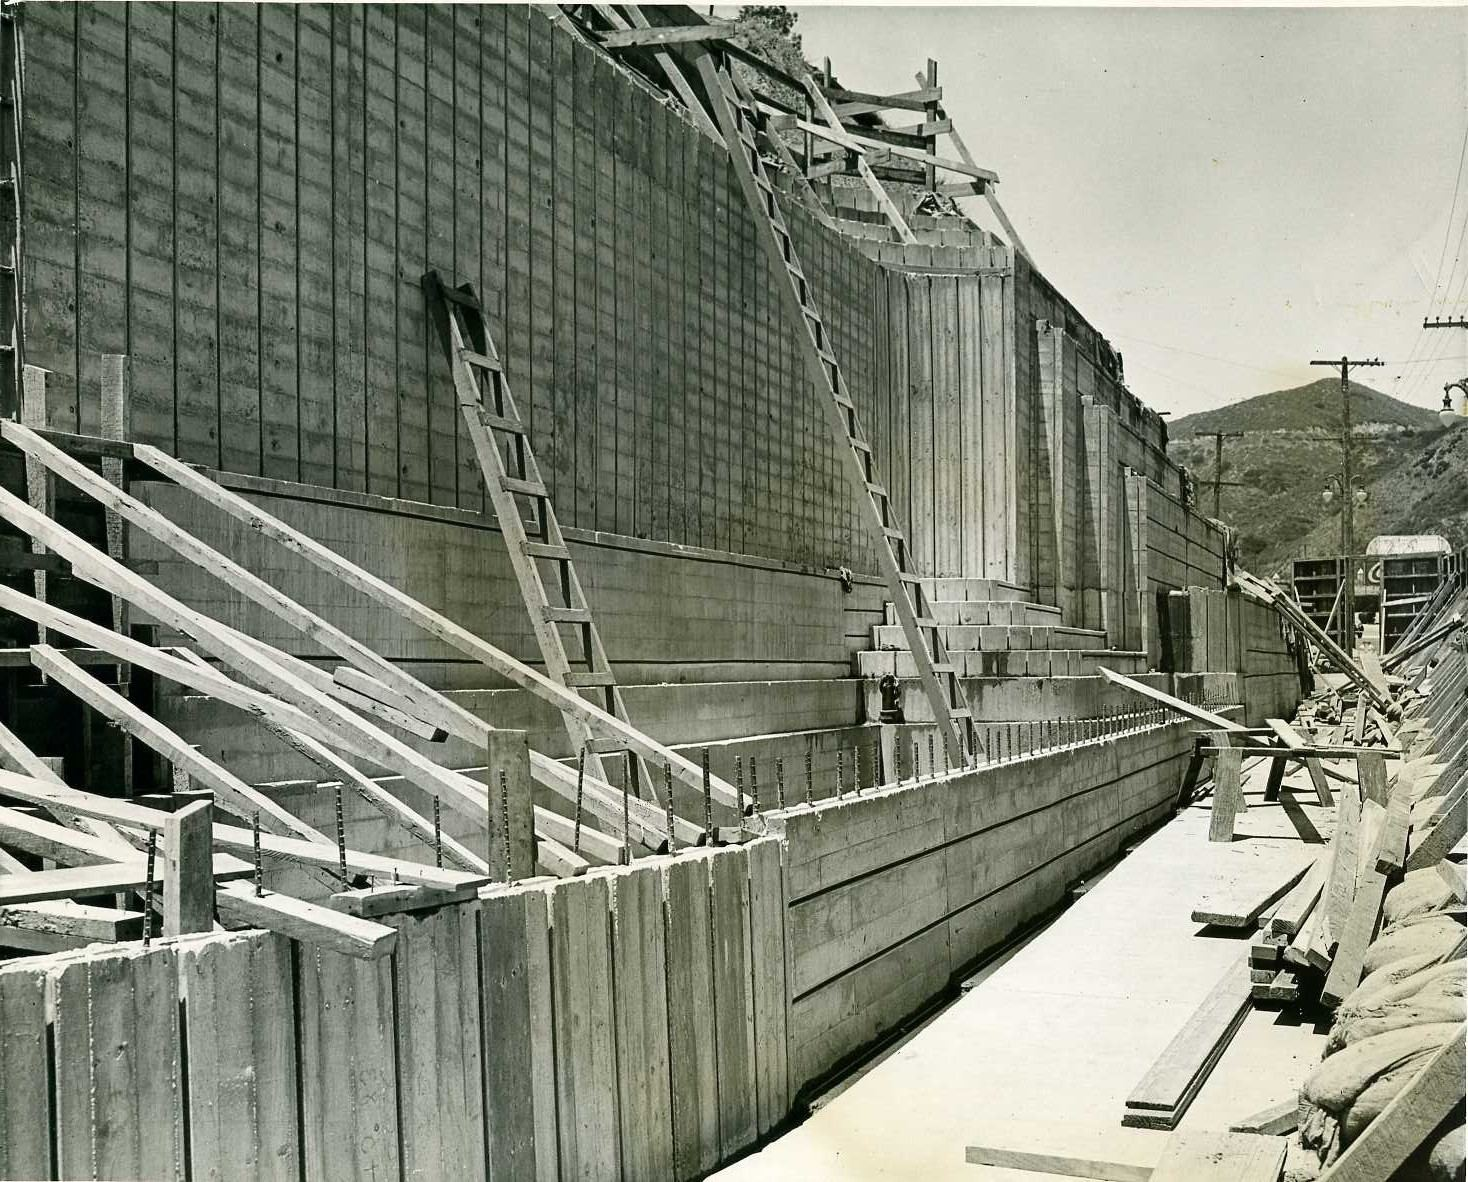 Construction of George Stanley fountain looking north on Highland Avenue side of entrance to the Hollywood Bowl, May 26, 1939.